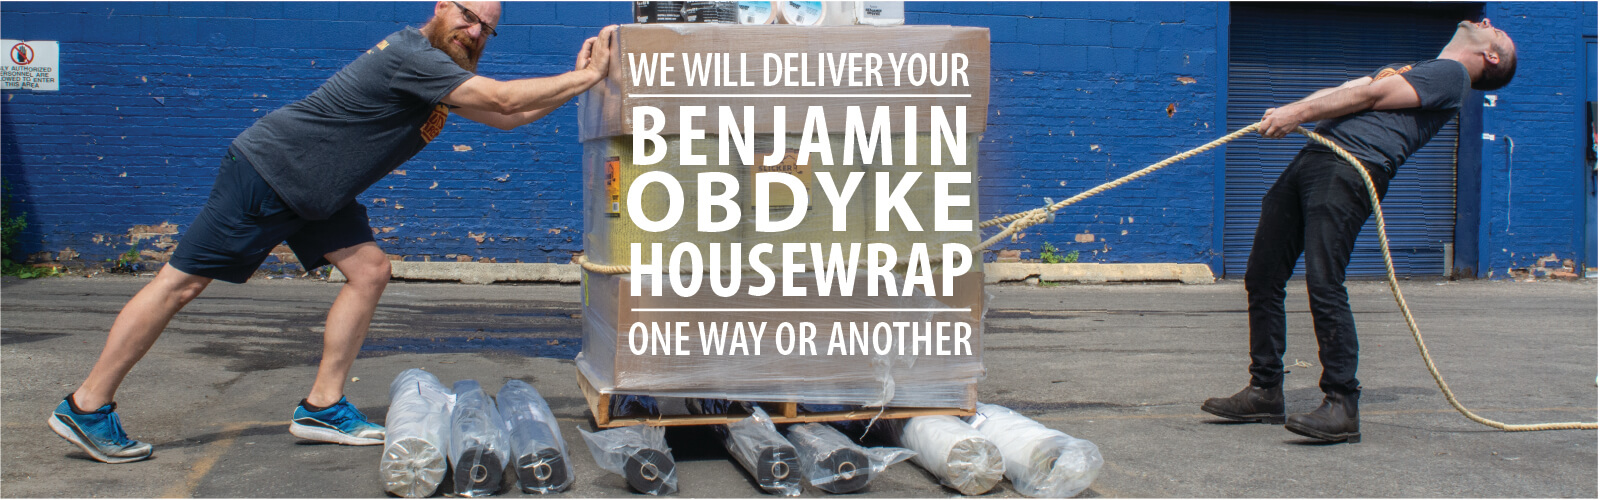 We will deliver your Benjamin Obdyke housewrap one way or another